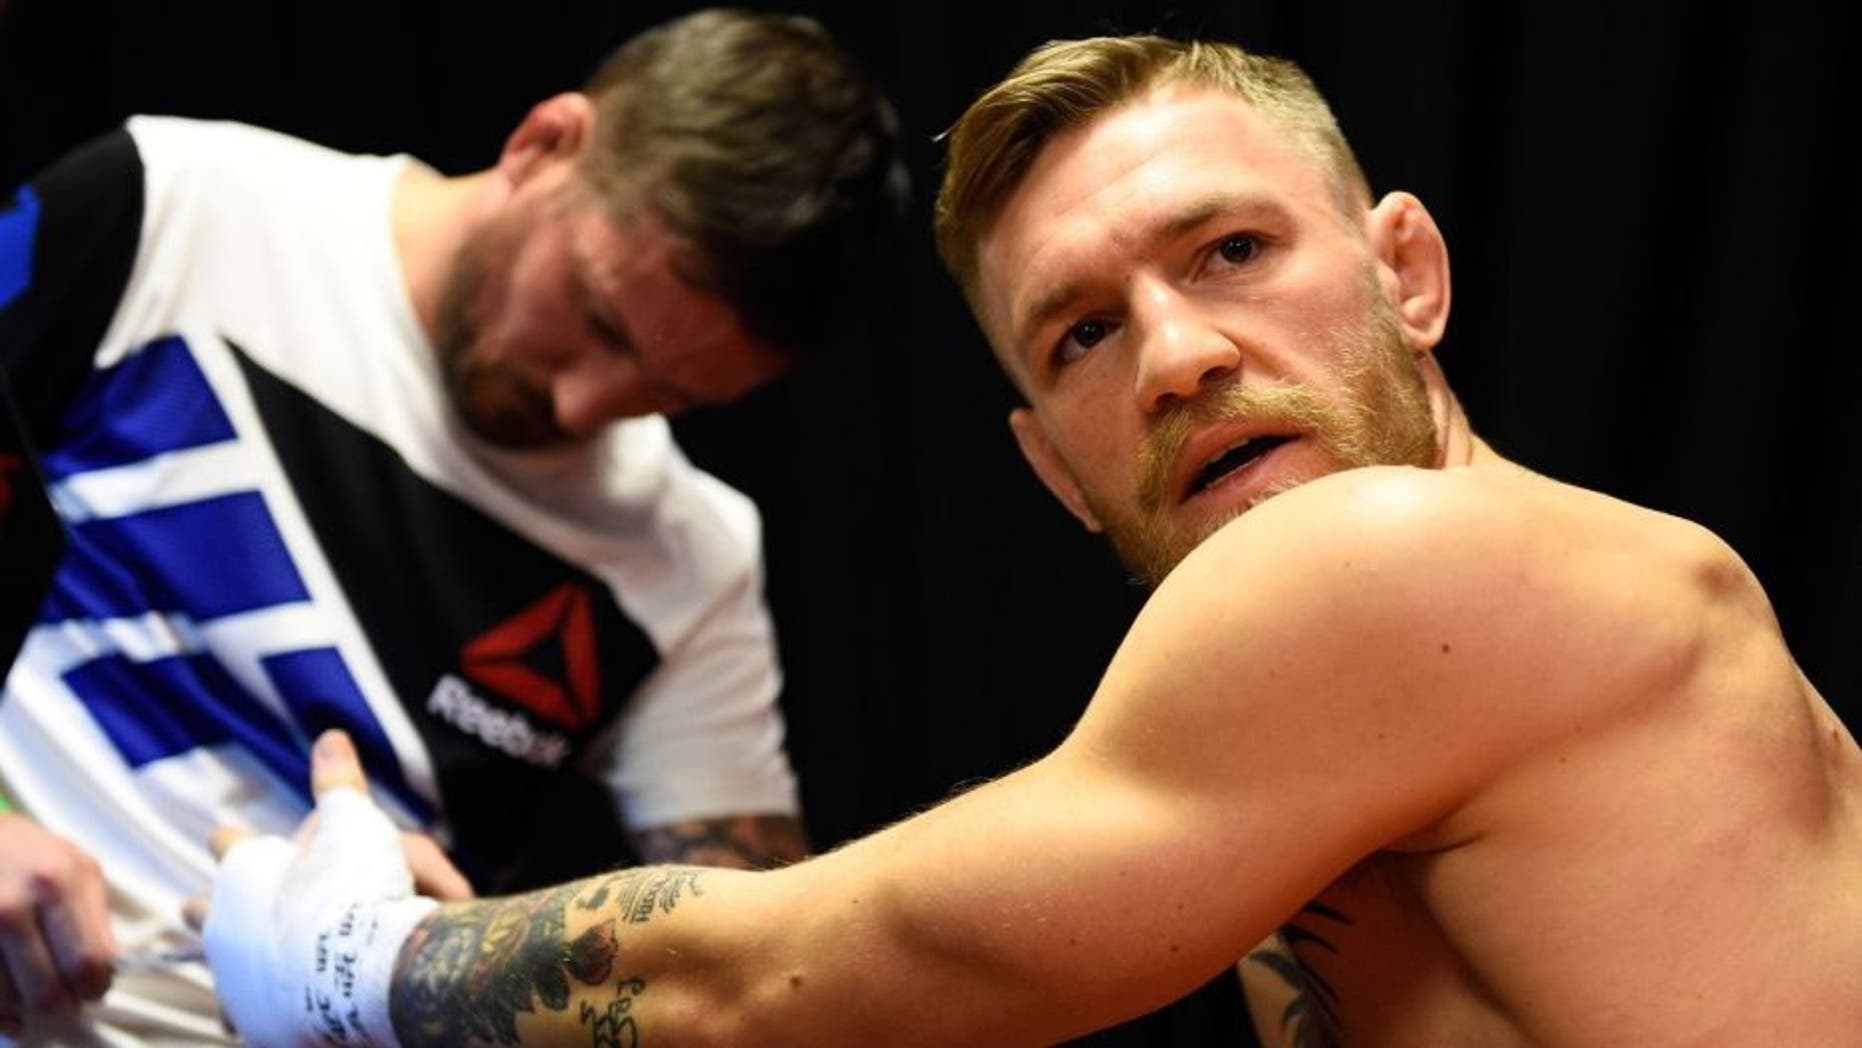 LAS VEGAS, NEVADA - DECEMBER 12: (R-L) Conor McGregor of Ireland gets his hands wrapped by coach John Kavanaugh backstage during the UFC 194 event inside MGM Grand Garden Arena on December 12, 2015 in Las Vegas, Nevada. (Photo by Jeff Bottari/Zuffa LLC/Zuffa LLC via Getty Images)